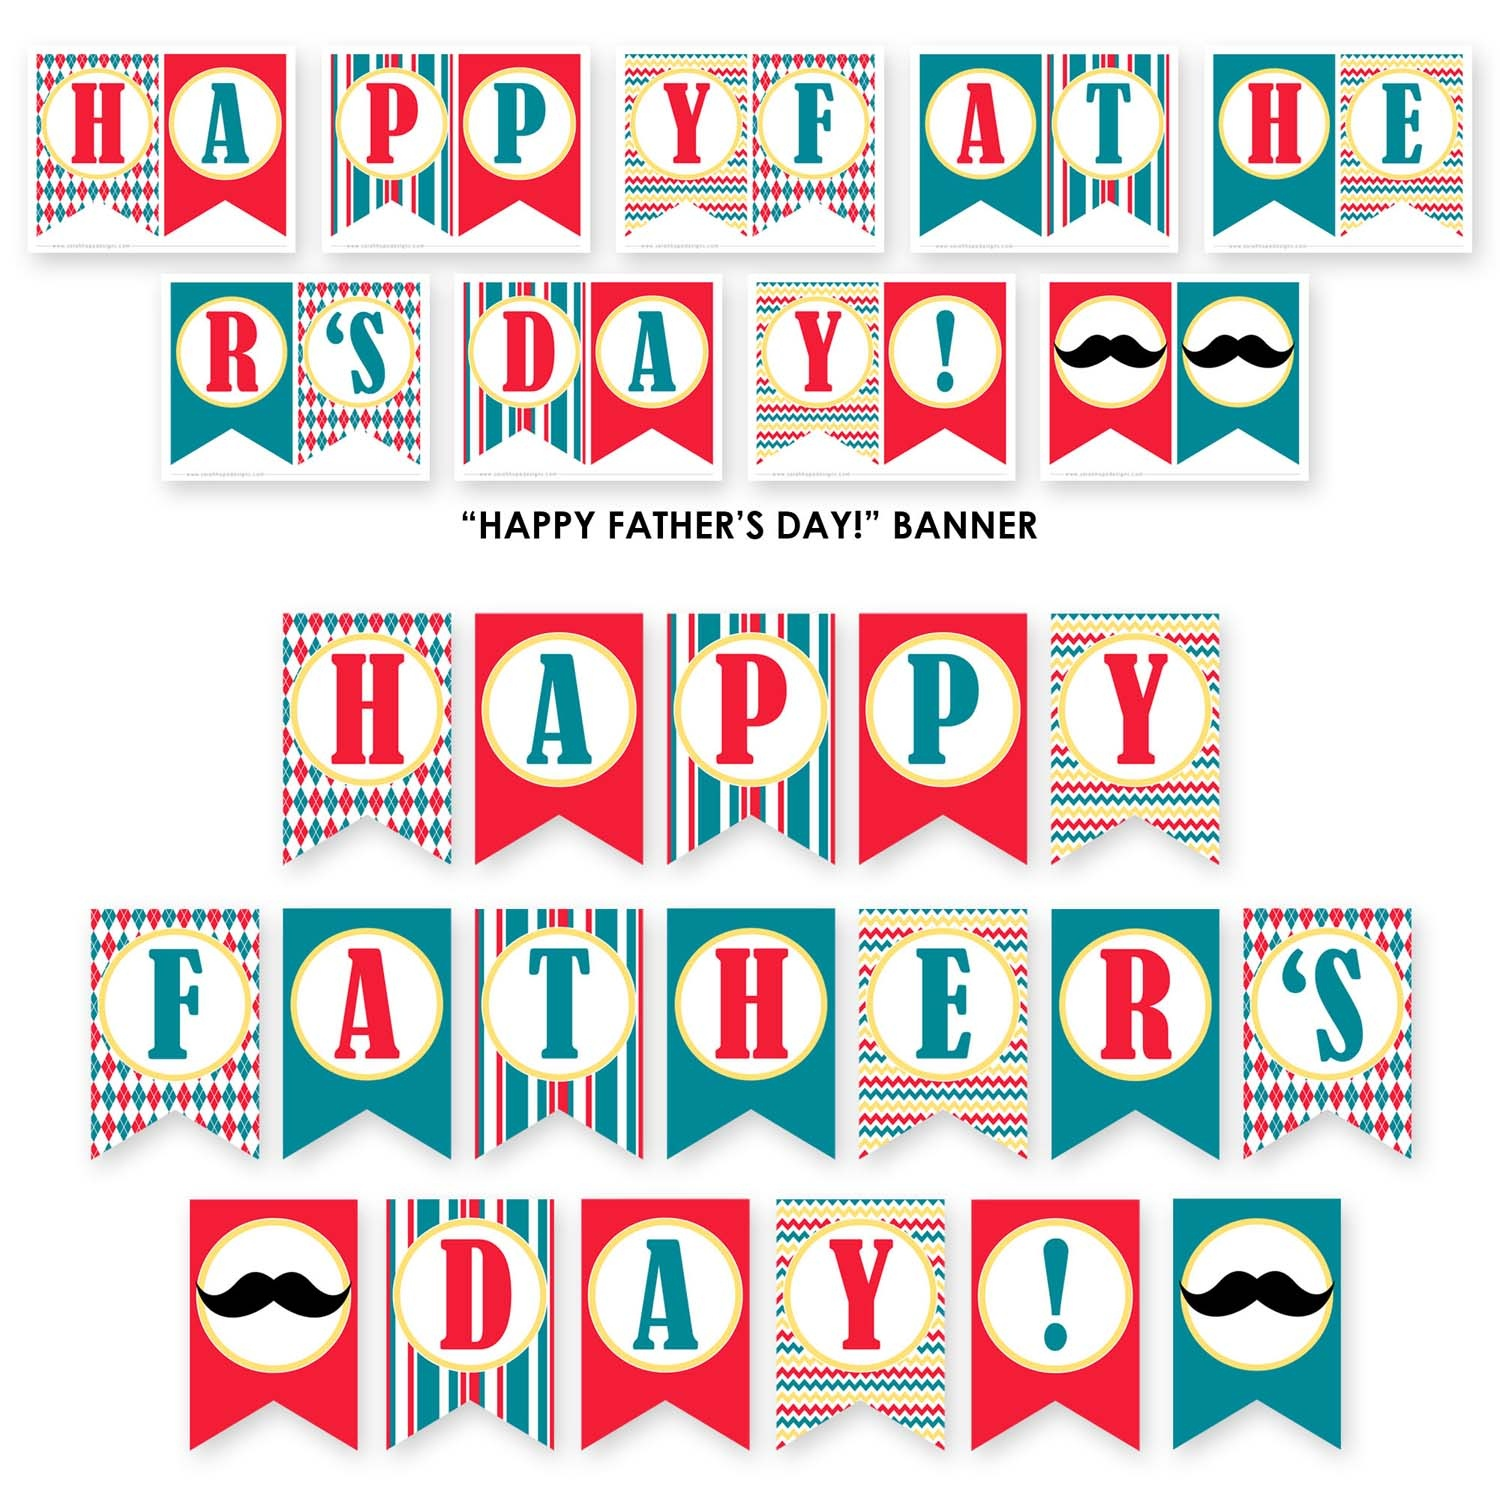 Free Father's Day Party Printables From Sarah Hope Designs | Catch - Free Printable Fathers Day Banners